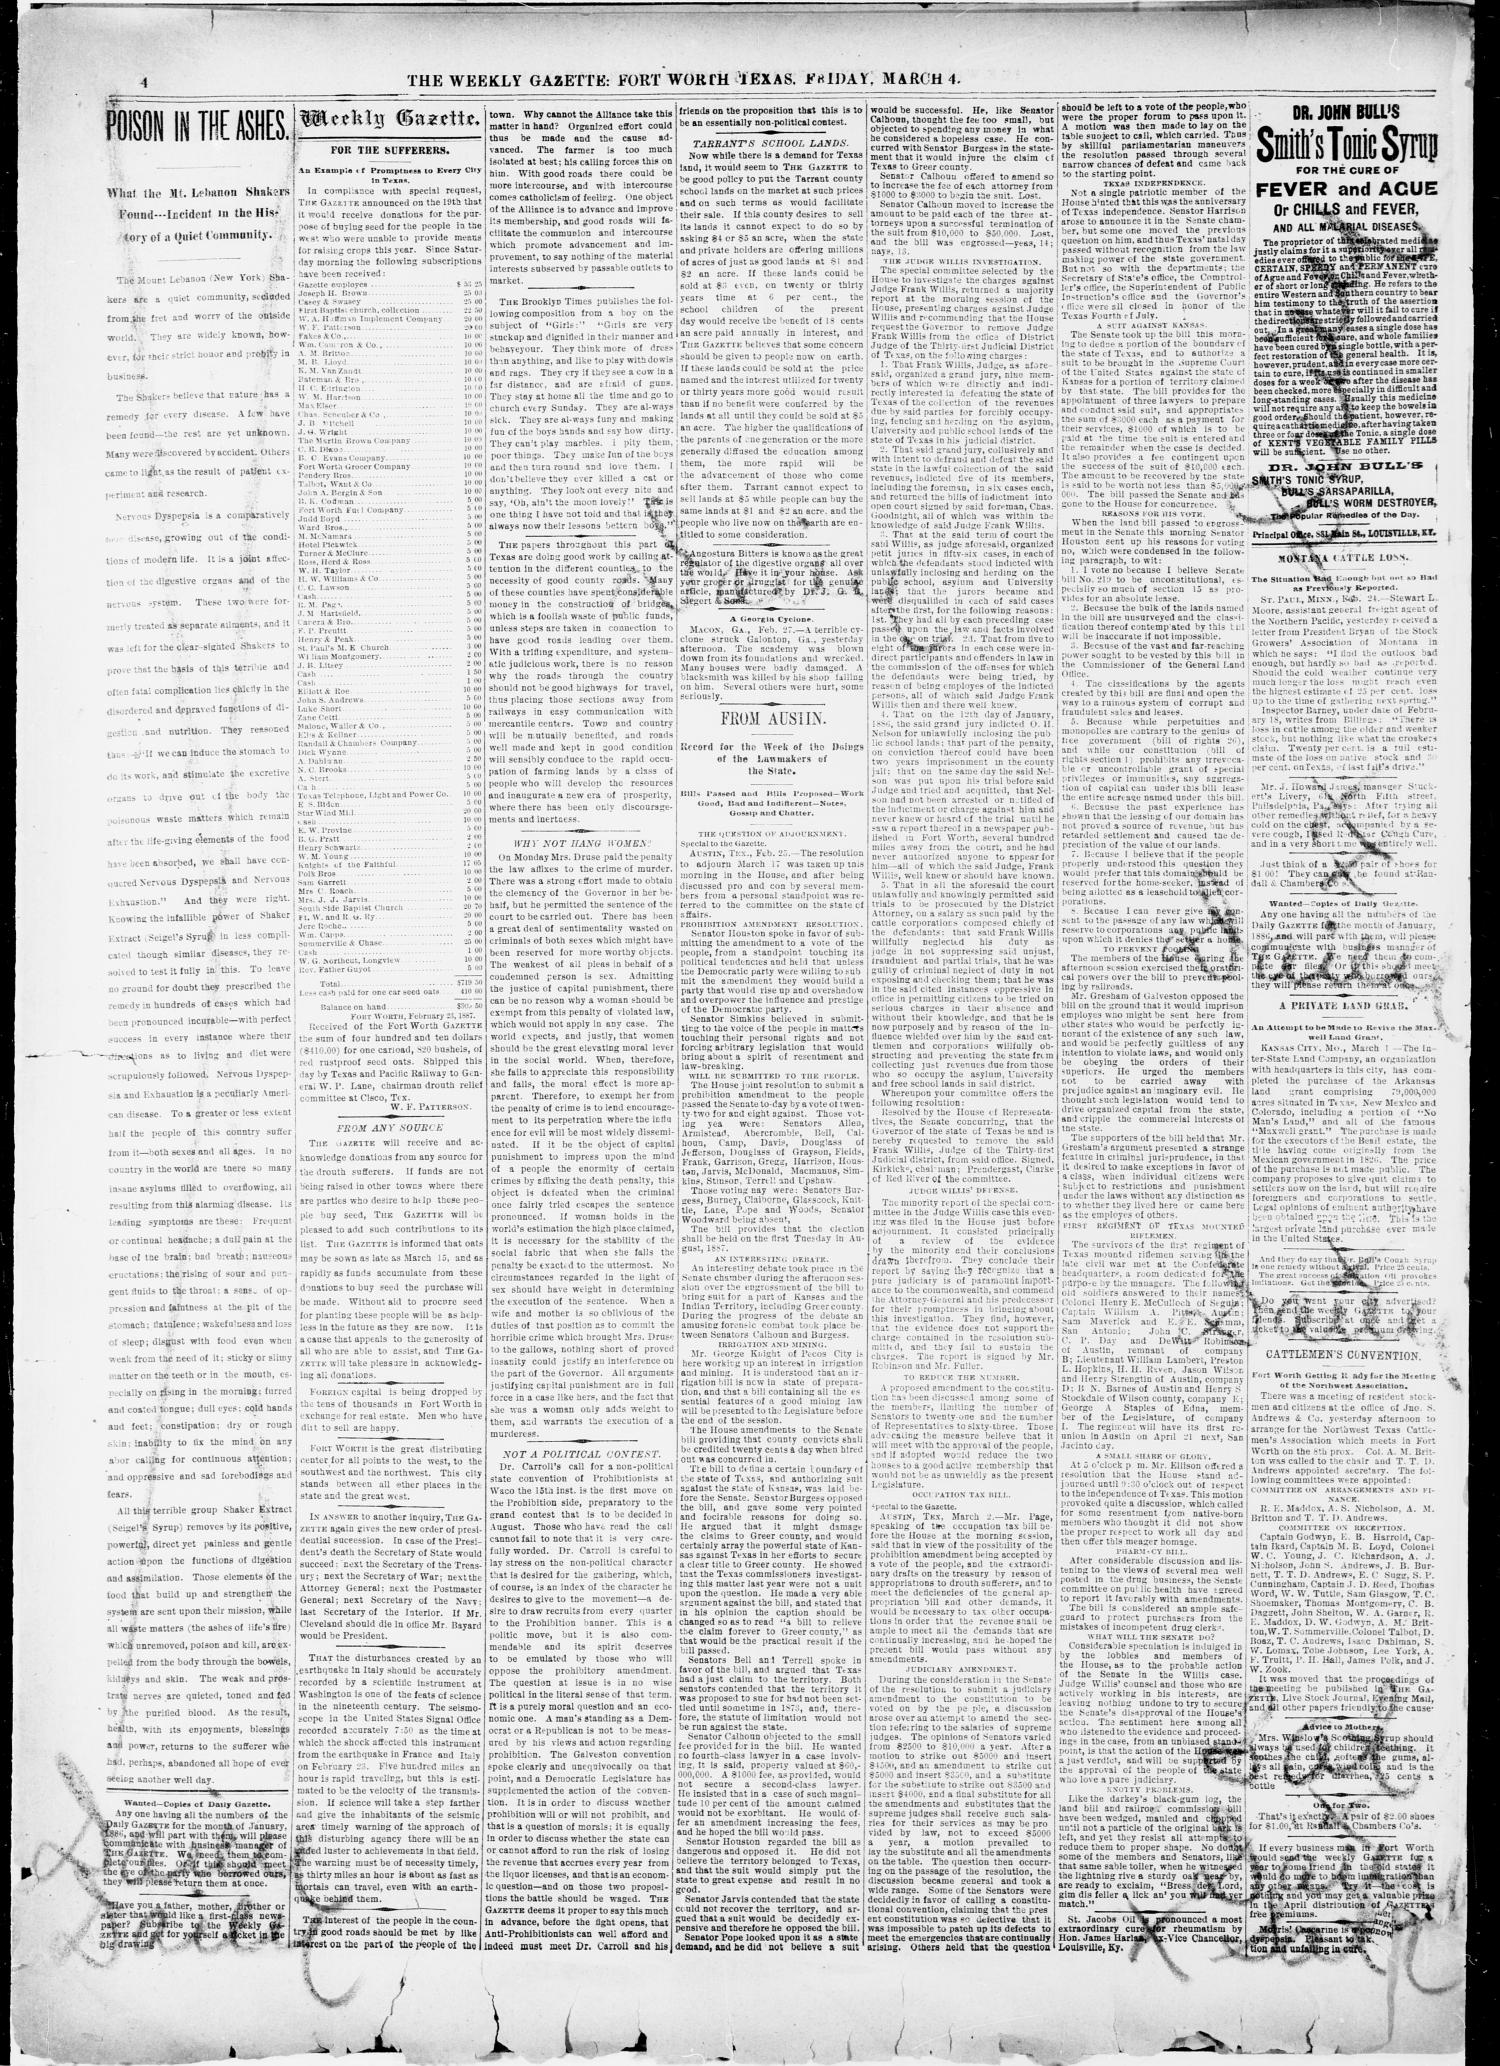 Fort Worth Weekly Gazette. (Fort Worth, Tex.), Vol. 17, No. 11, Ed. 1, Friday, March 4, 1887 - Page 4 of 8 - The Portal to Texas History